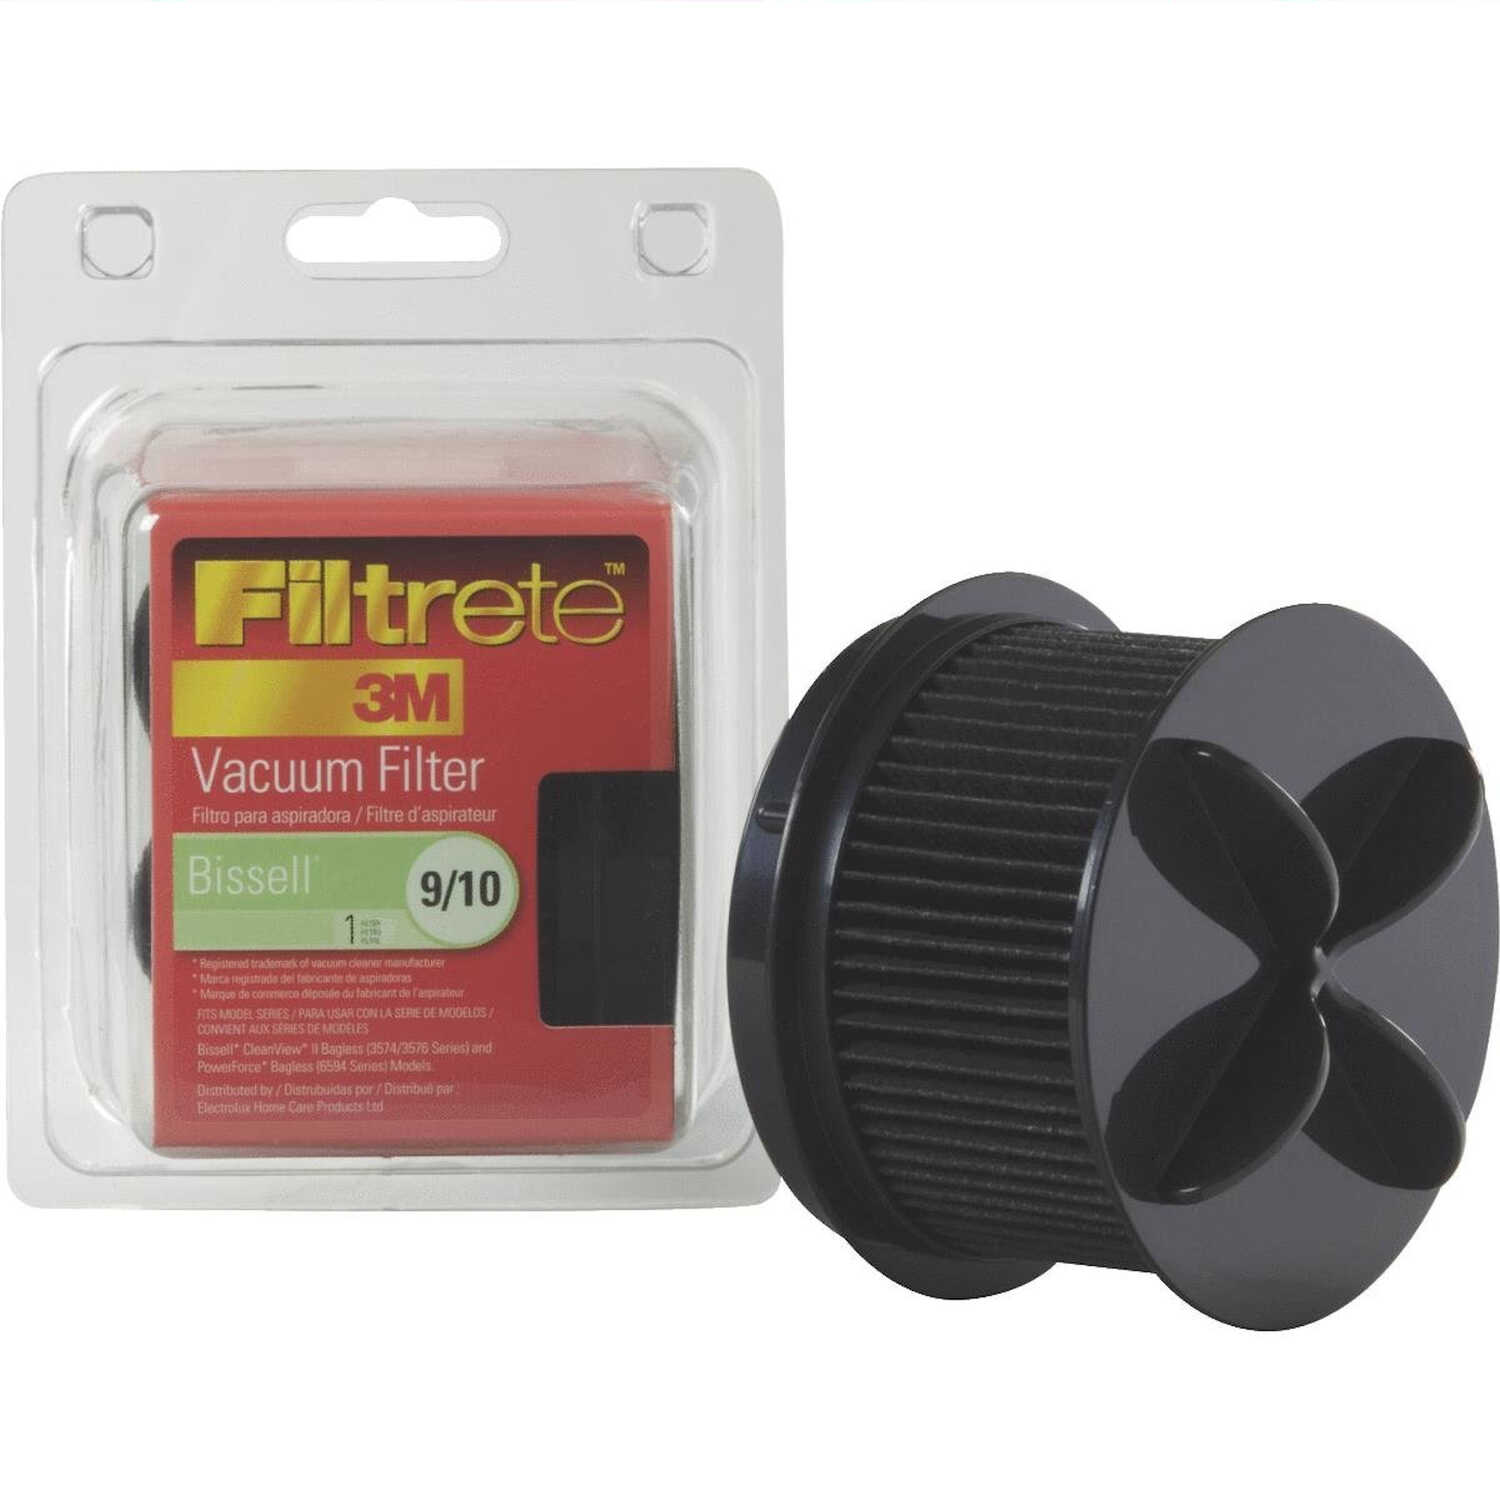 3M  Filtrete  Vacuum Filter  For Bissell 9-10-12 1 pk